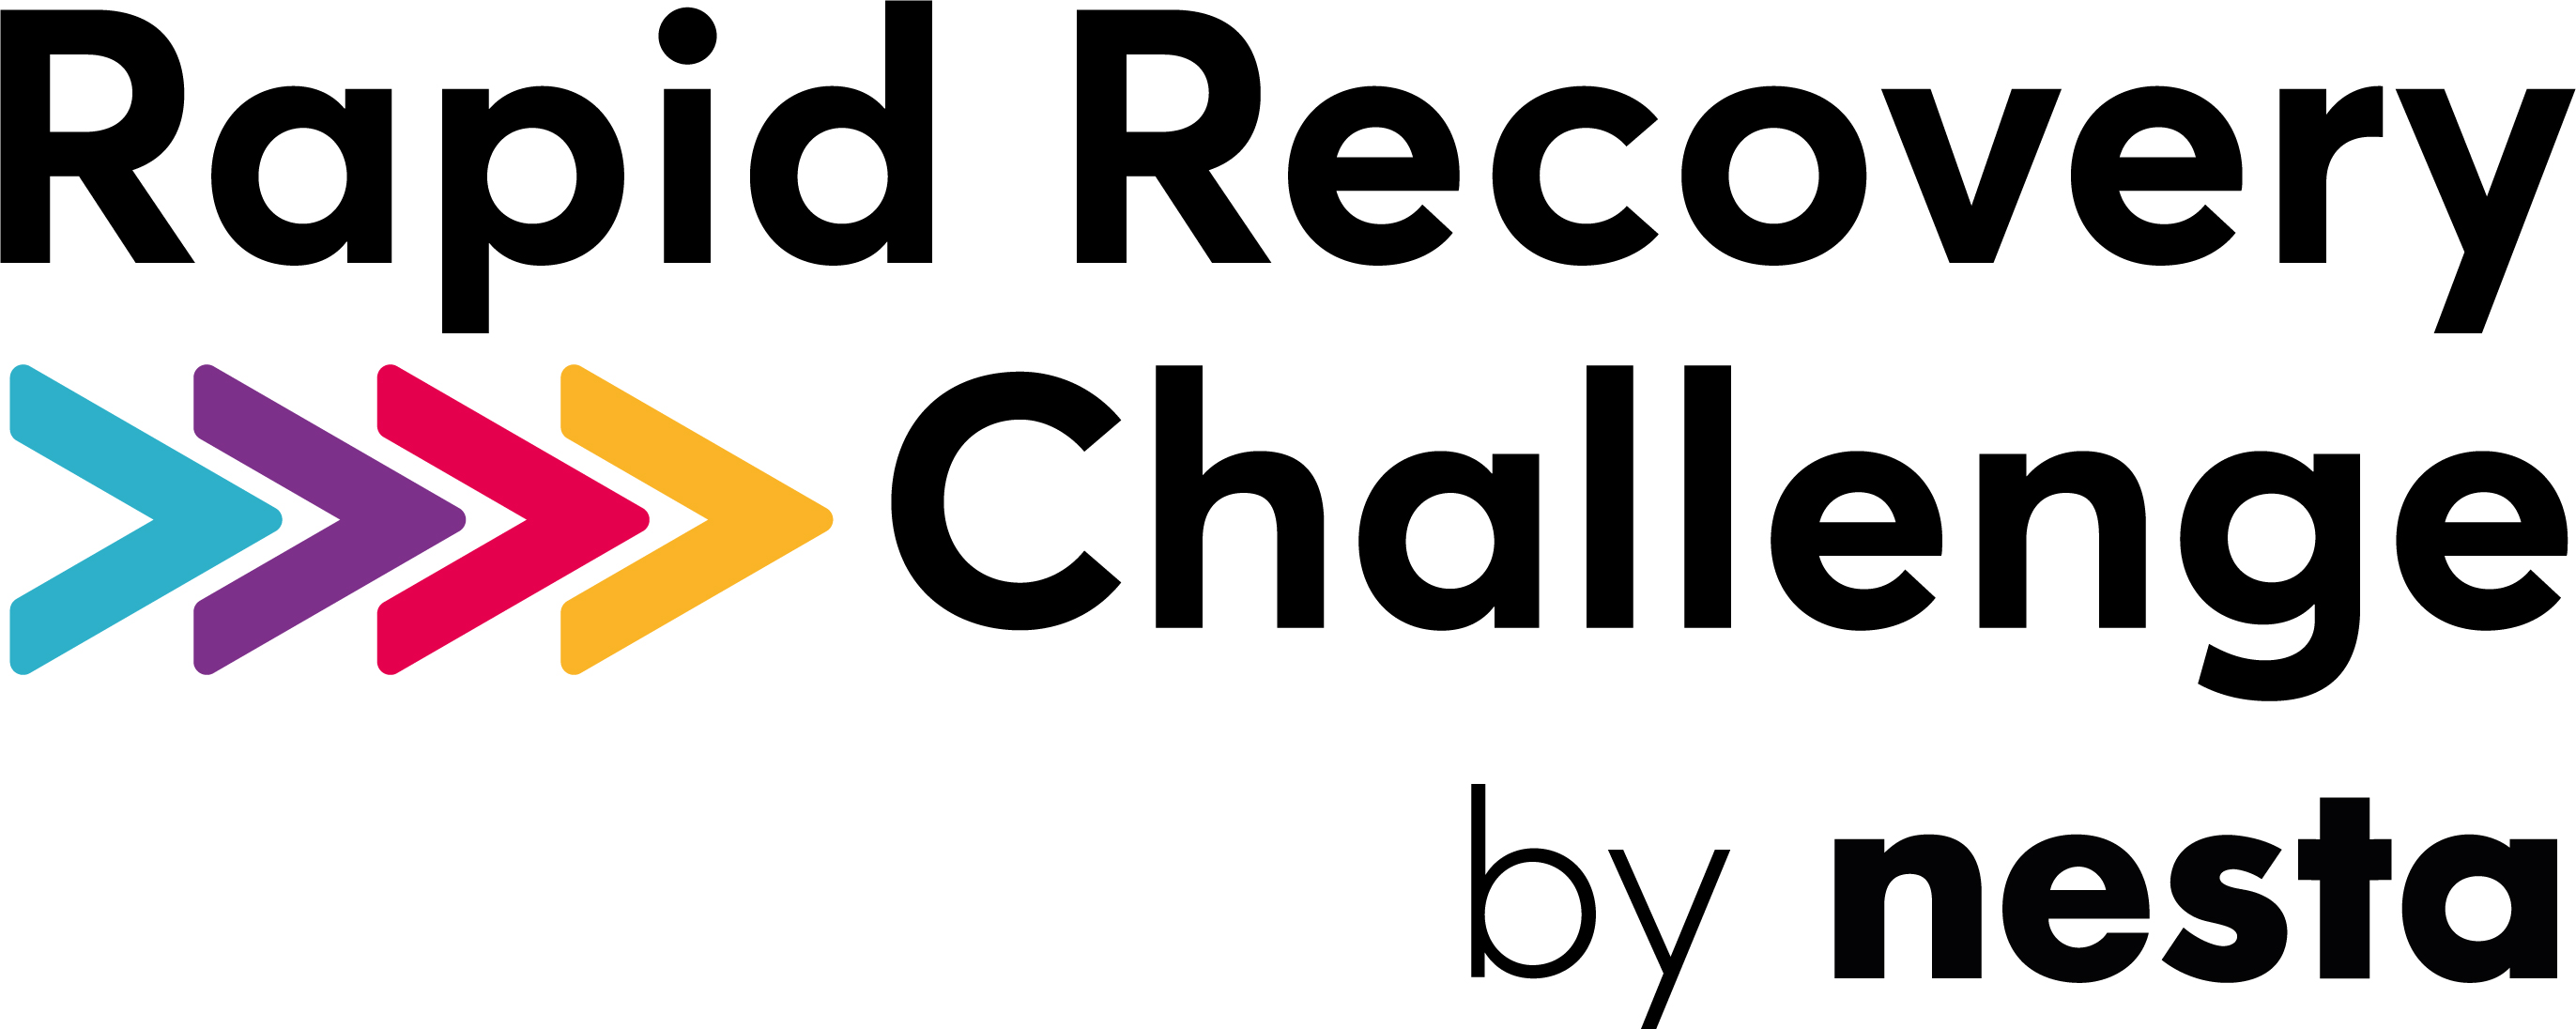 Rapid Recovery Challenge logo